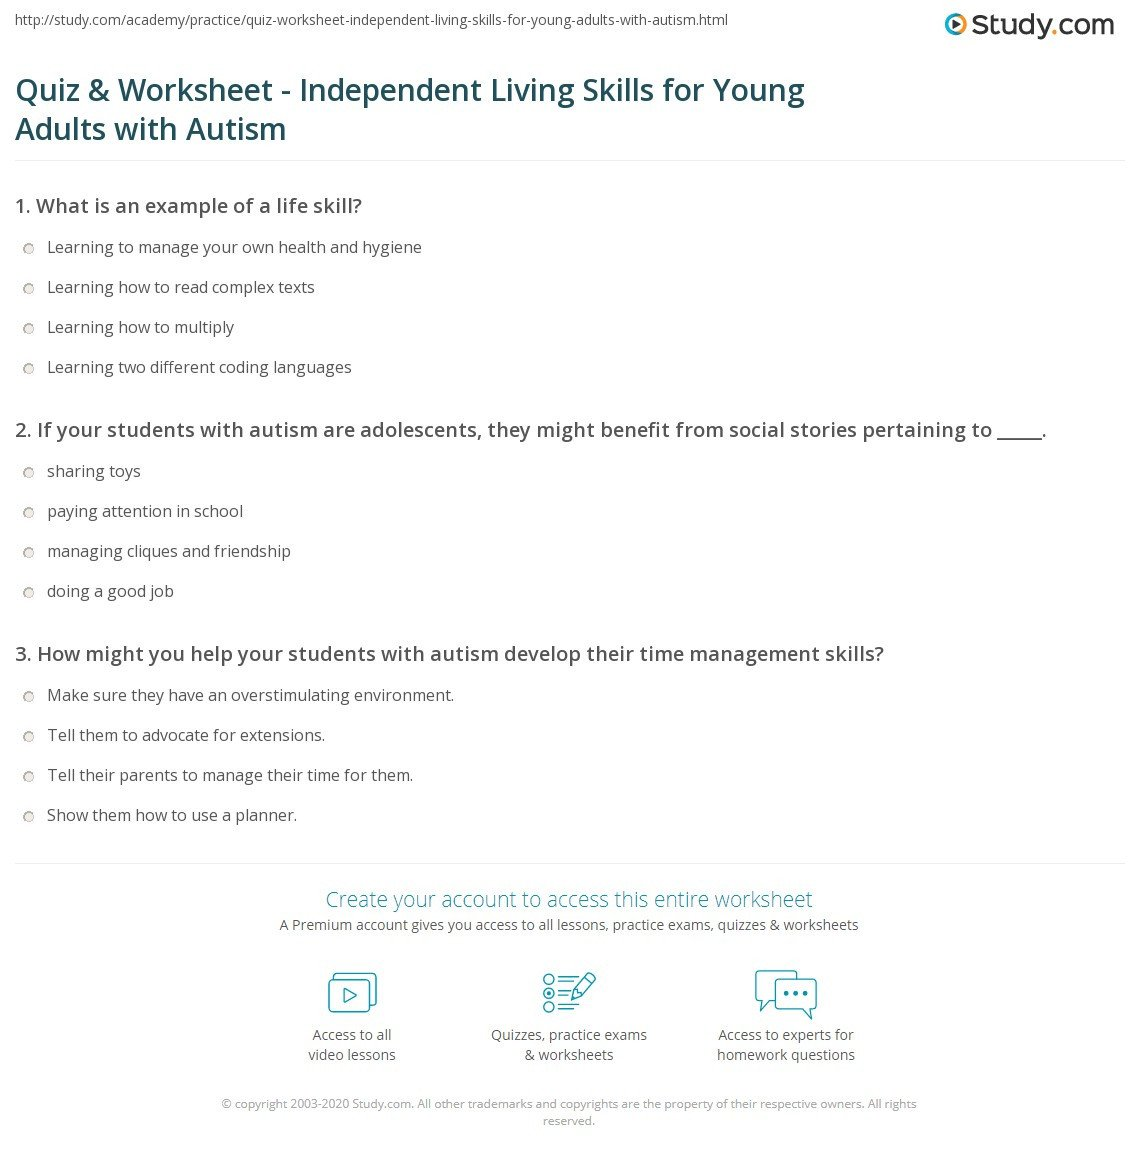 Autism Life Skills Worksheets Quiz Worksheet Independent Living Skills for Adults with